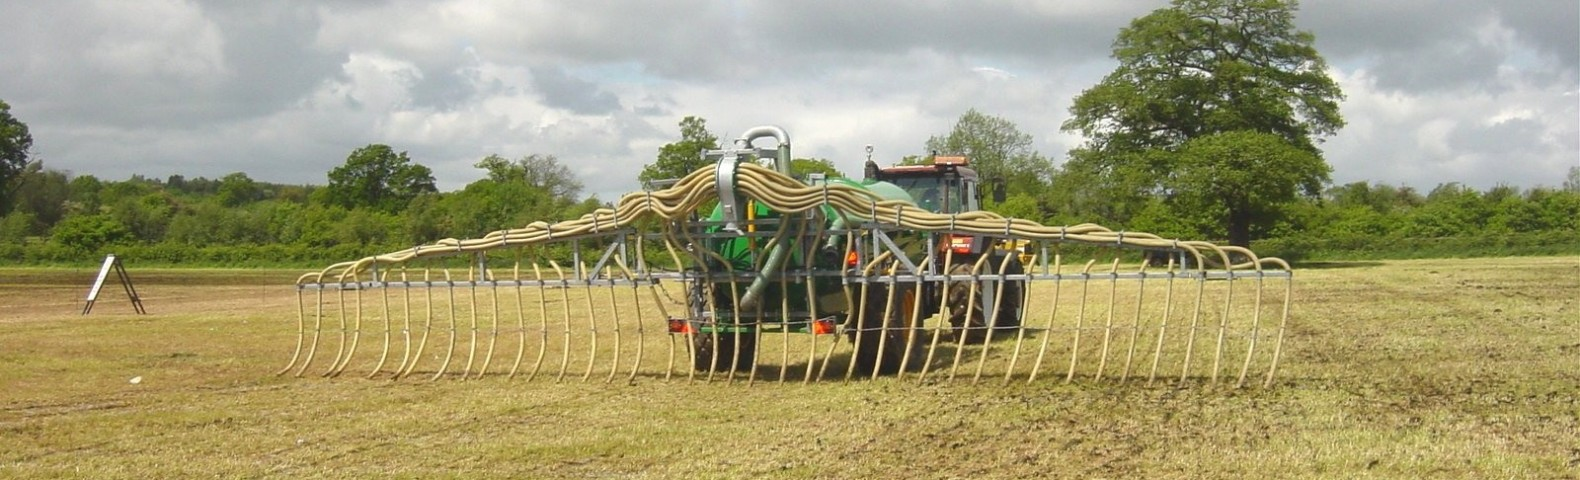 Slurry Spreading Advice for Contractors and Farmers